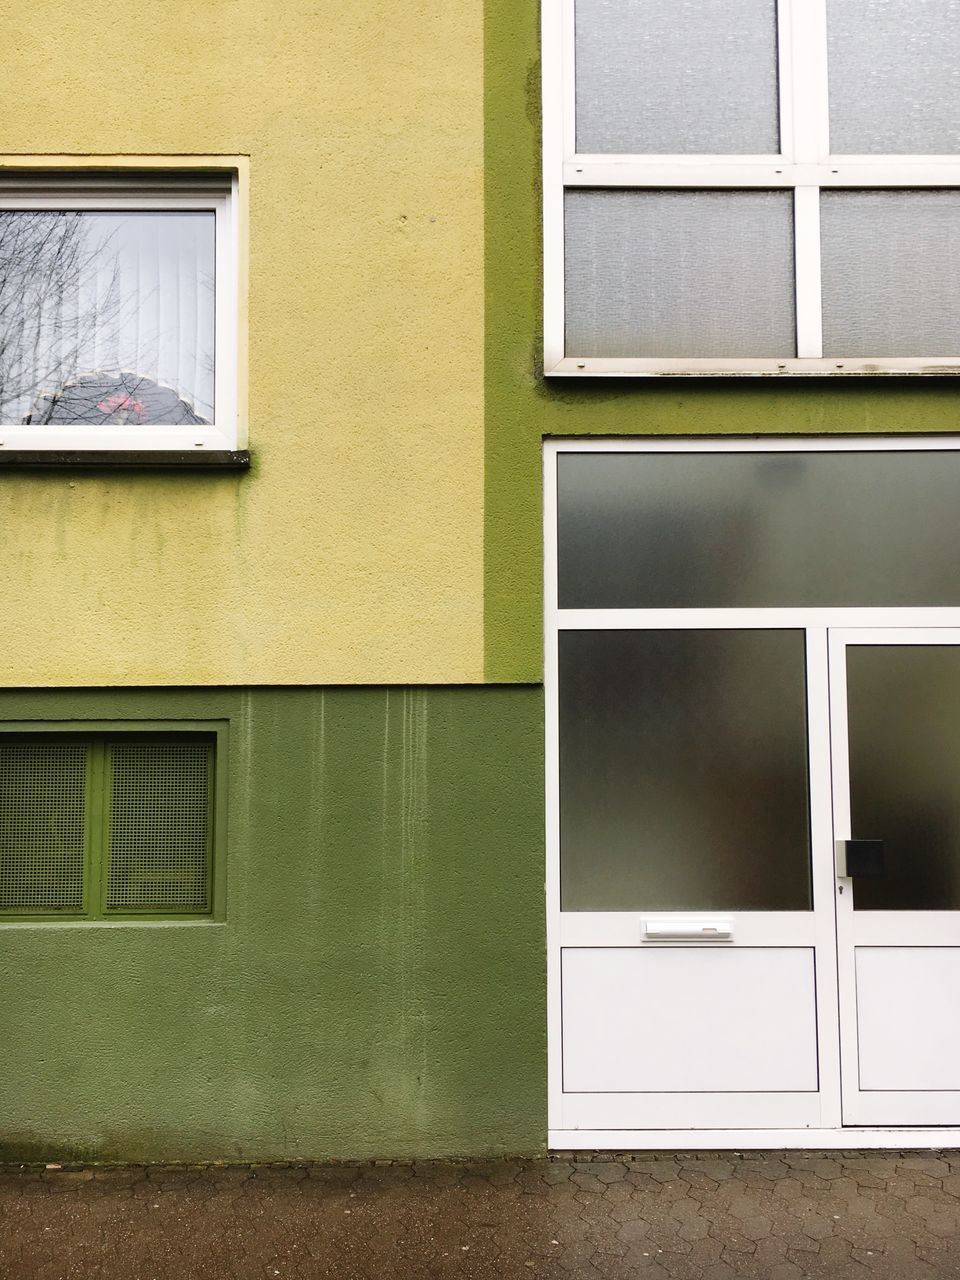 window, architecture, built structure, building exterior, no people, day, outdoors, close-up